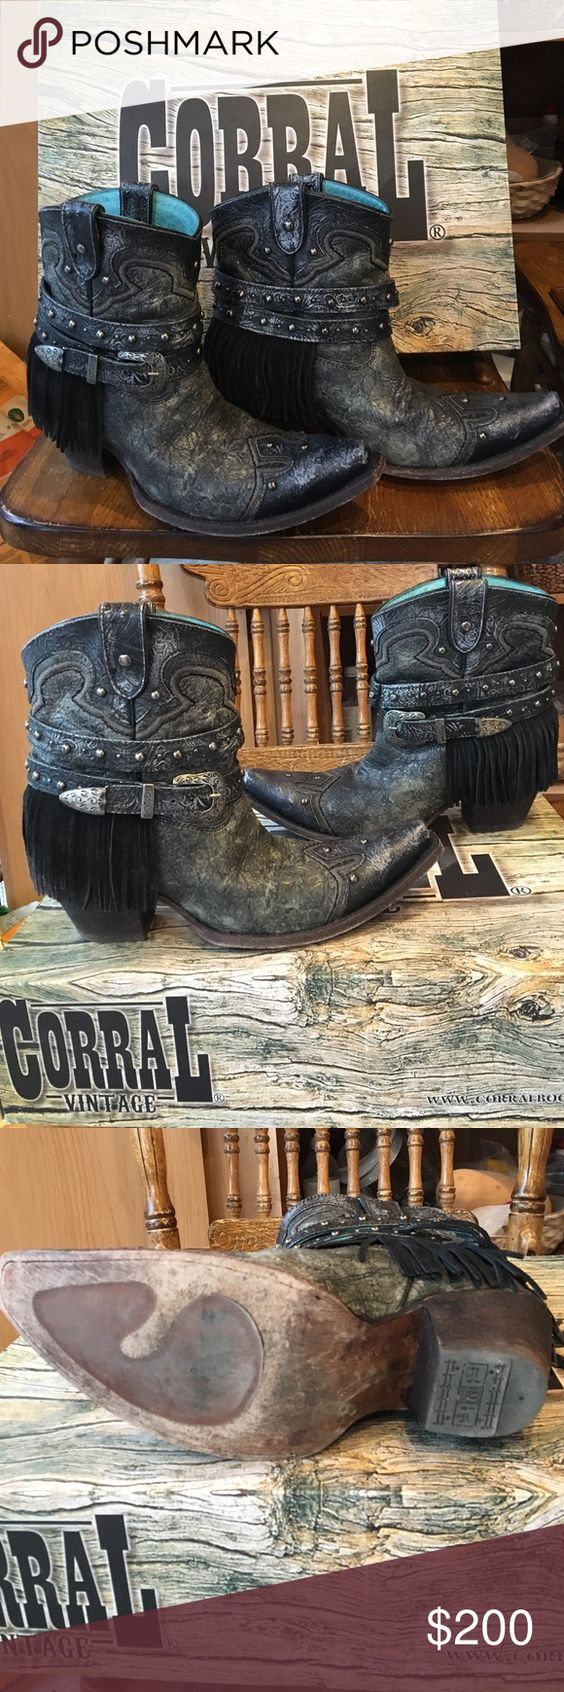 Corral Vintage Short Cowboy Boots These boots are Corral Vintage.  Awesome boots, the straps & fringe come off.  They are a silver & black color.  I just had to have them in this color & they had this last pair which are 9 & a half.  I have worn them about 10 times and they are just too big for me.  I am firm on the price. Corral Vintage Shoes Ankle Boots & Booties